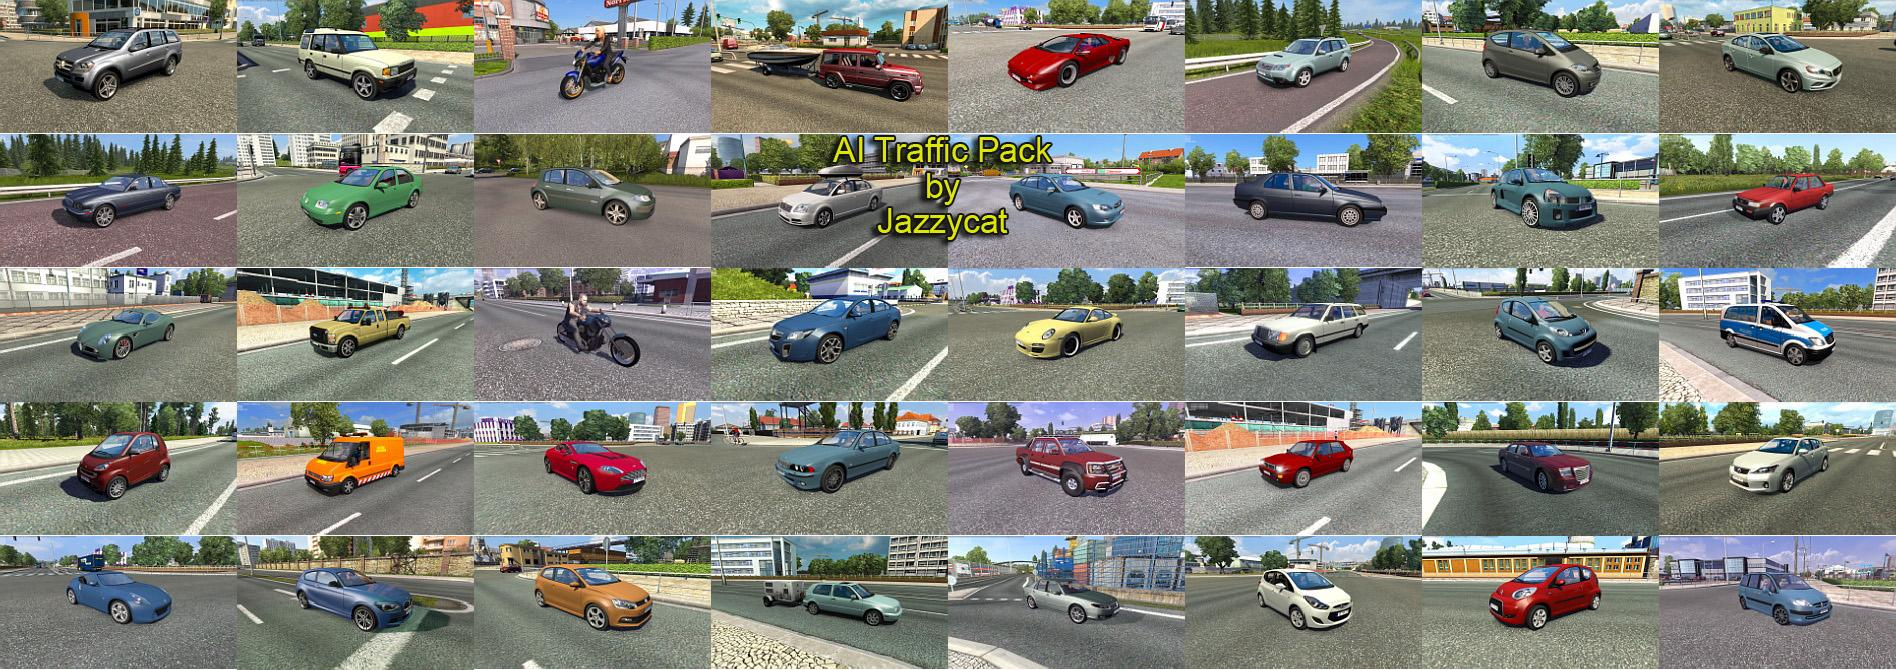 AI TRAFFIC PACK BY JAZZYCAT V3 2 ETS 2 -Euro Truck Simulator